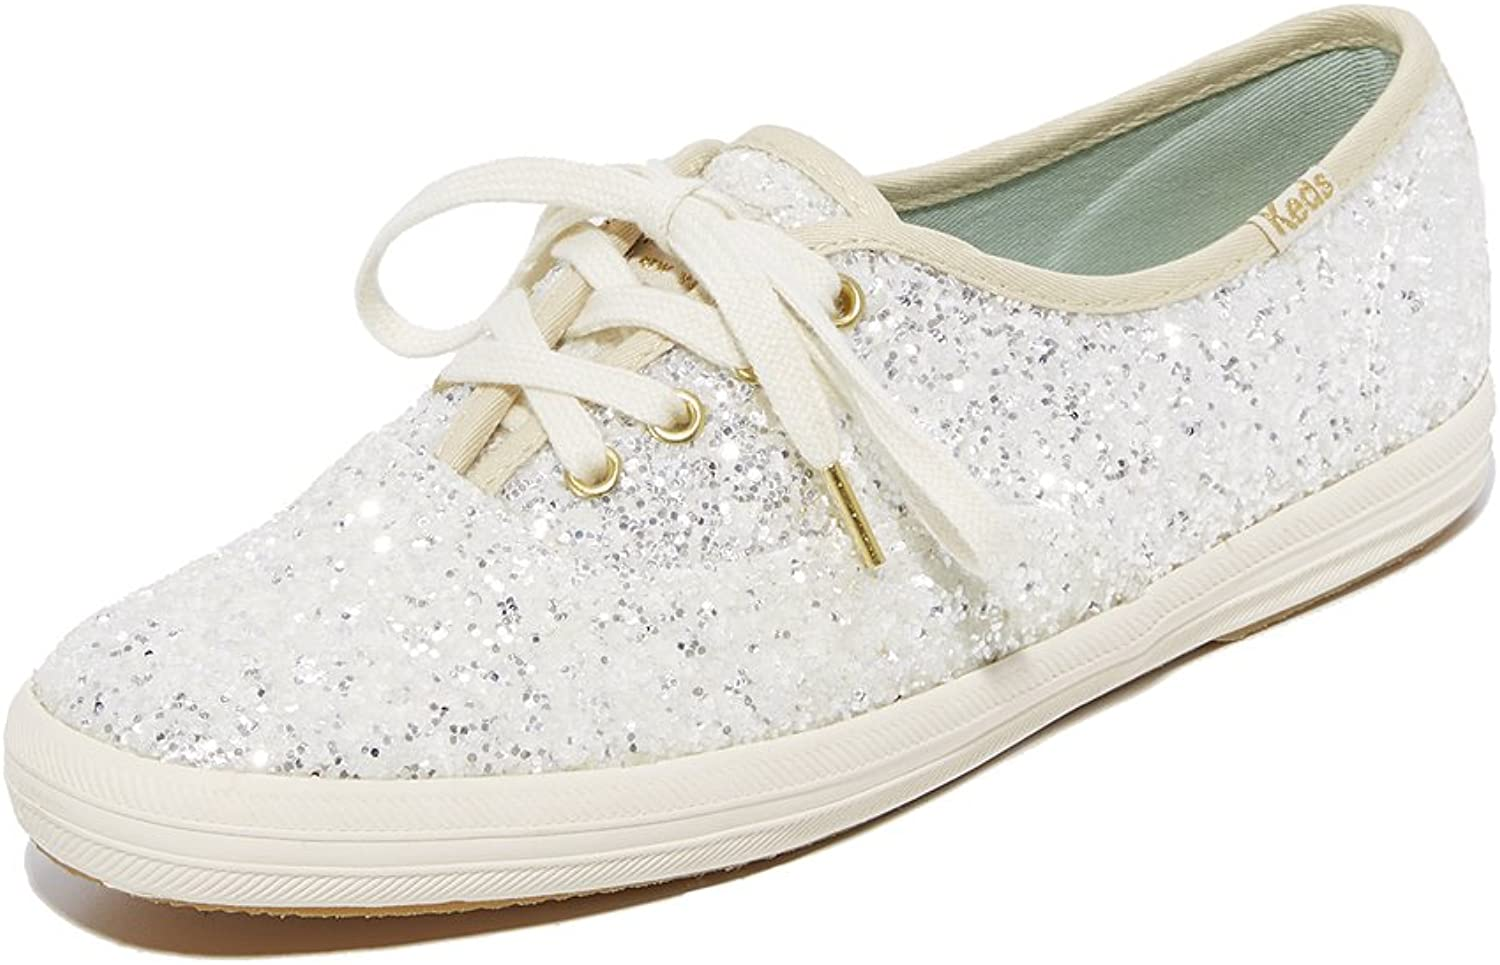 Keds Women's x Kate Spade New York Glitter Sneakers